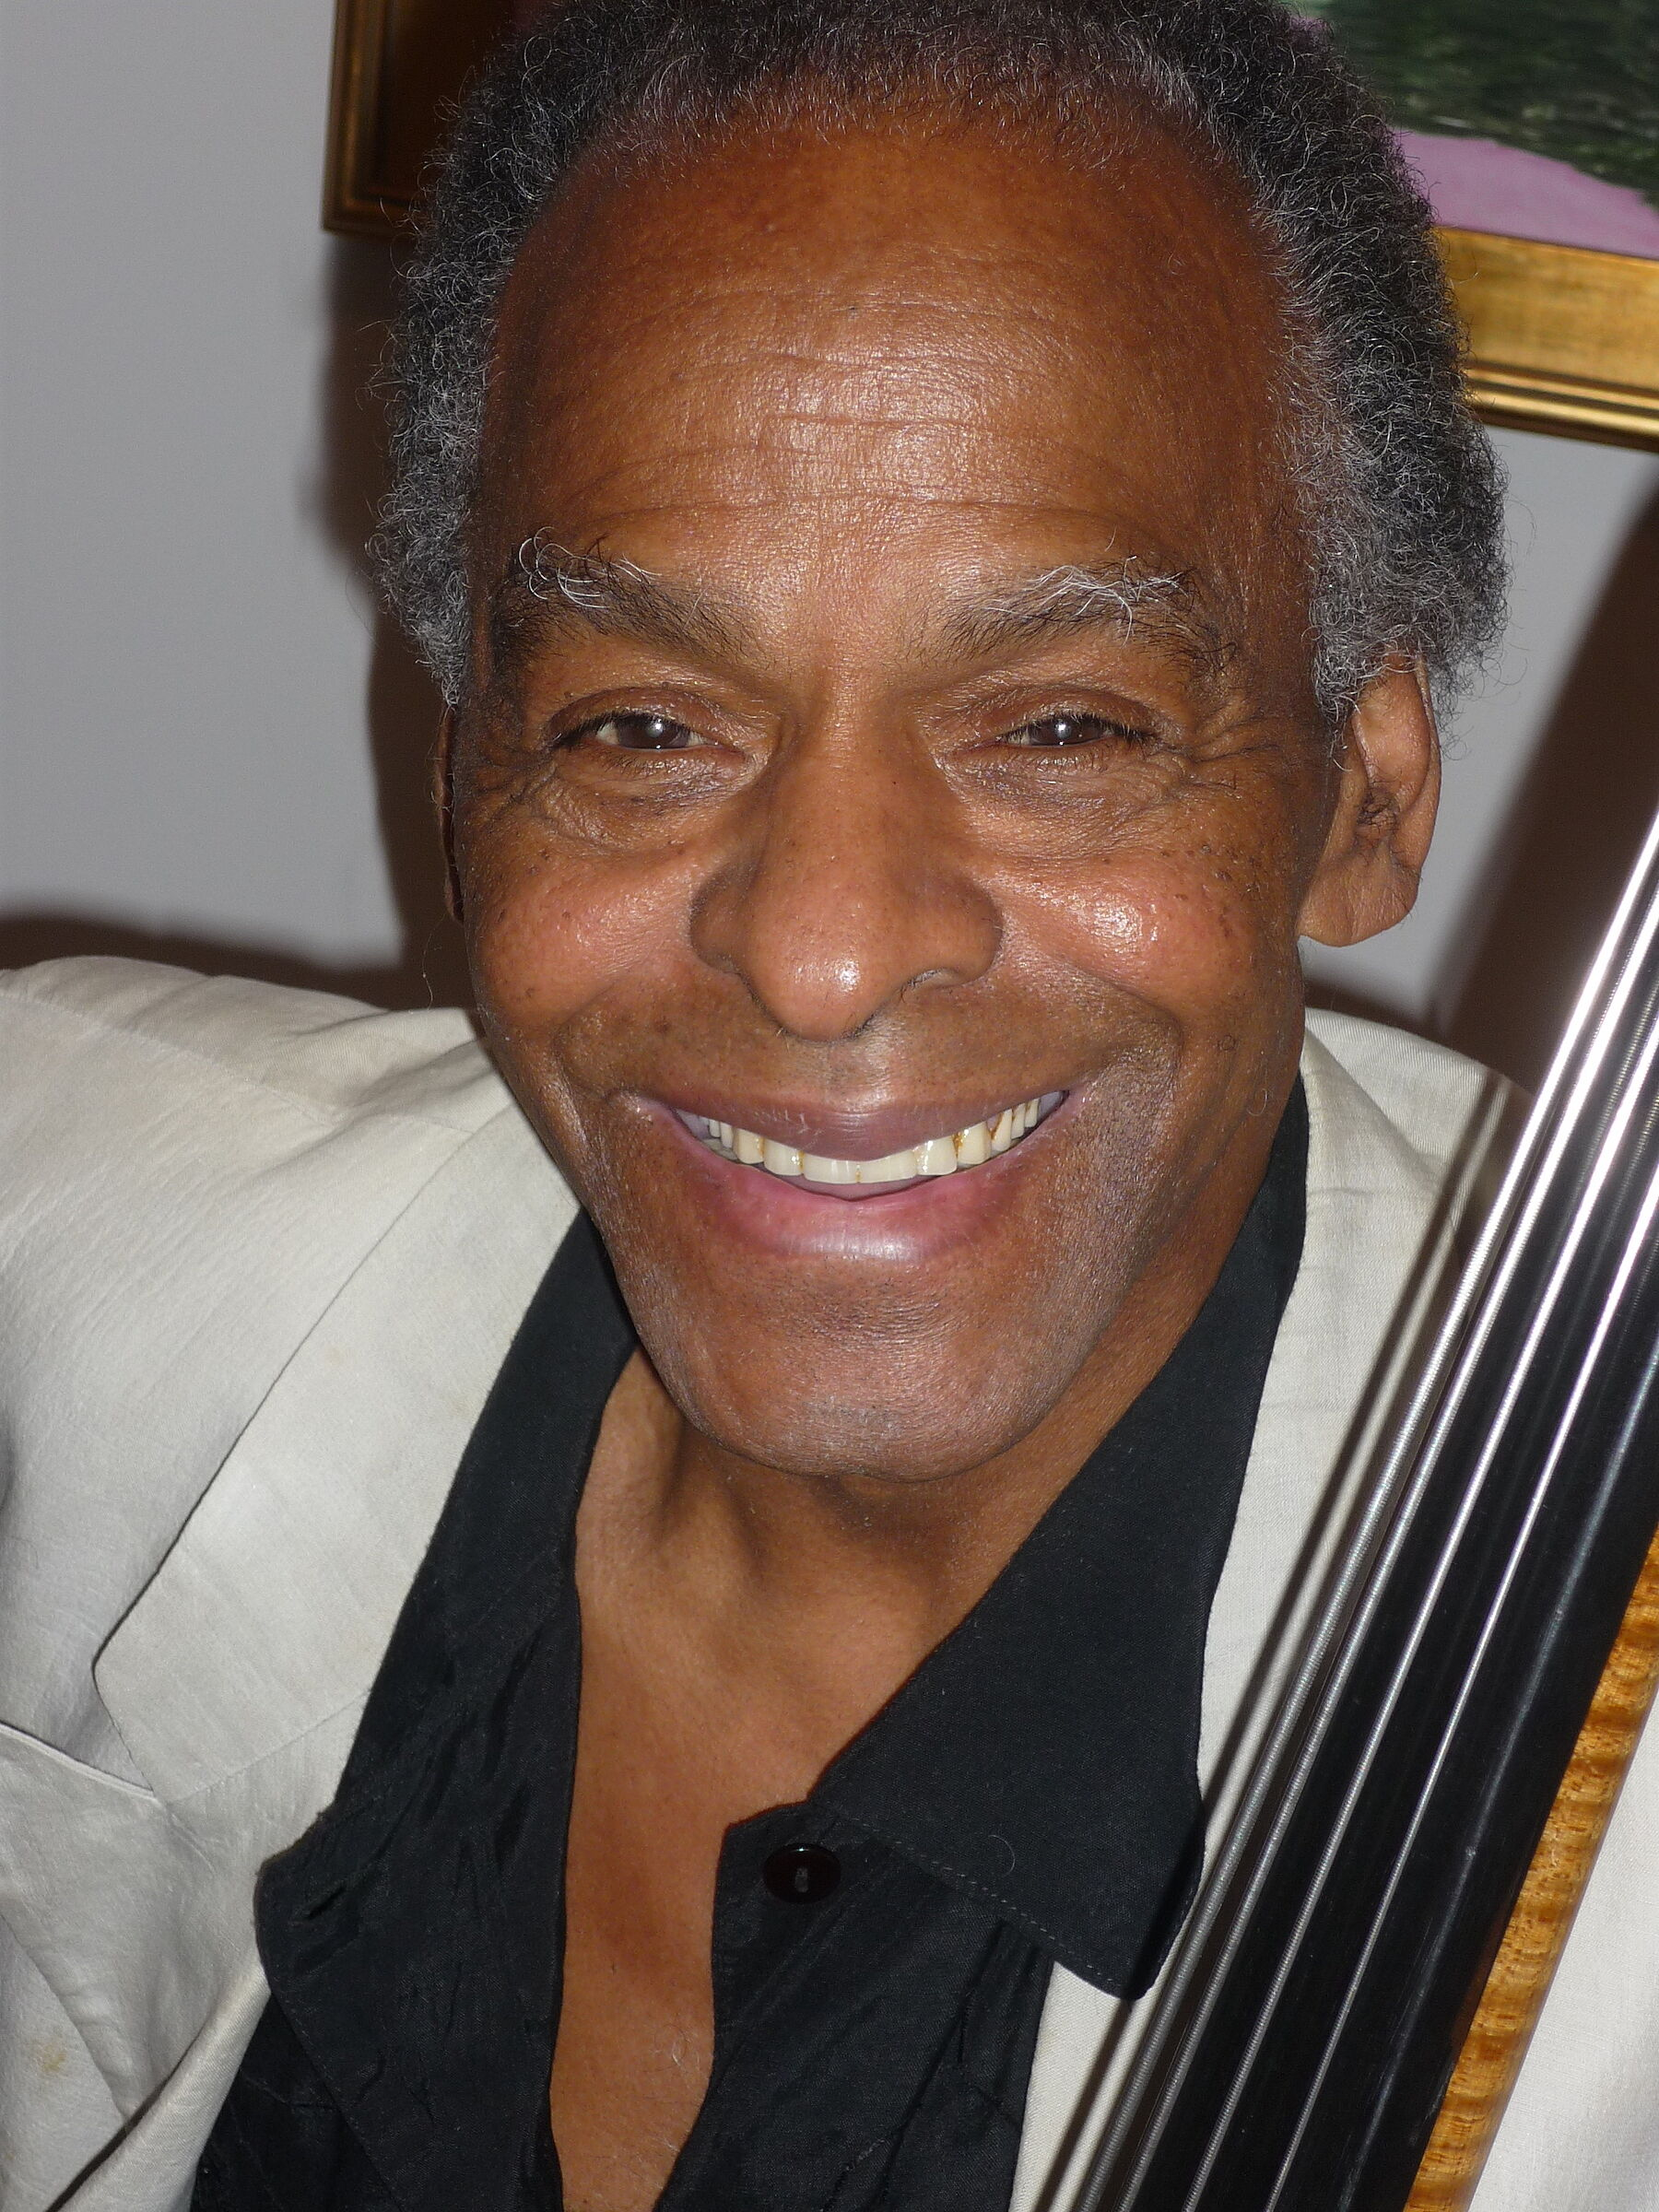 A photo of Cecil McBee.